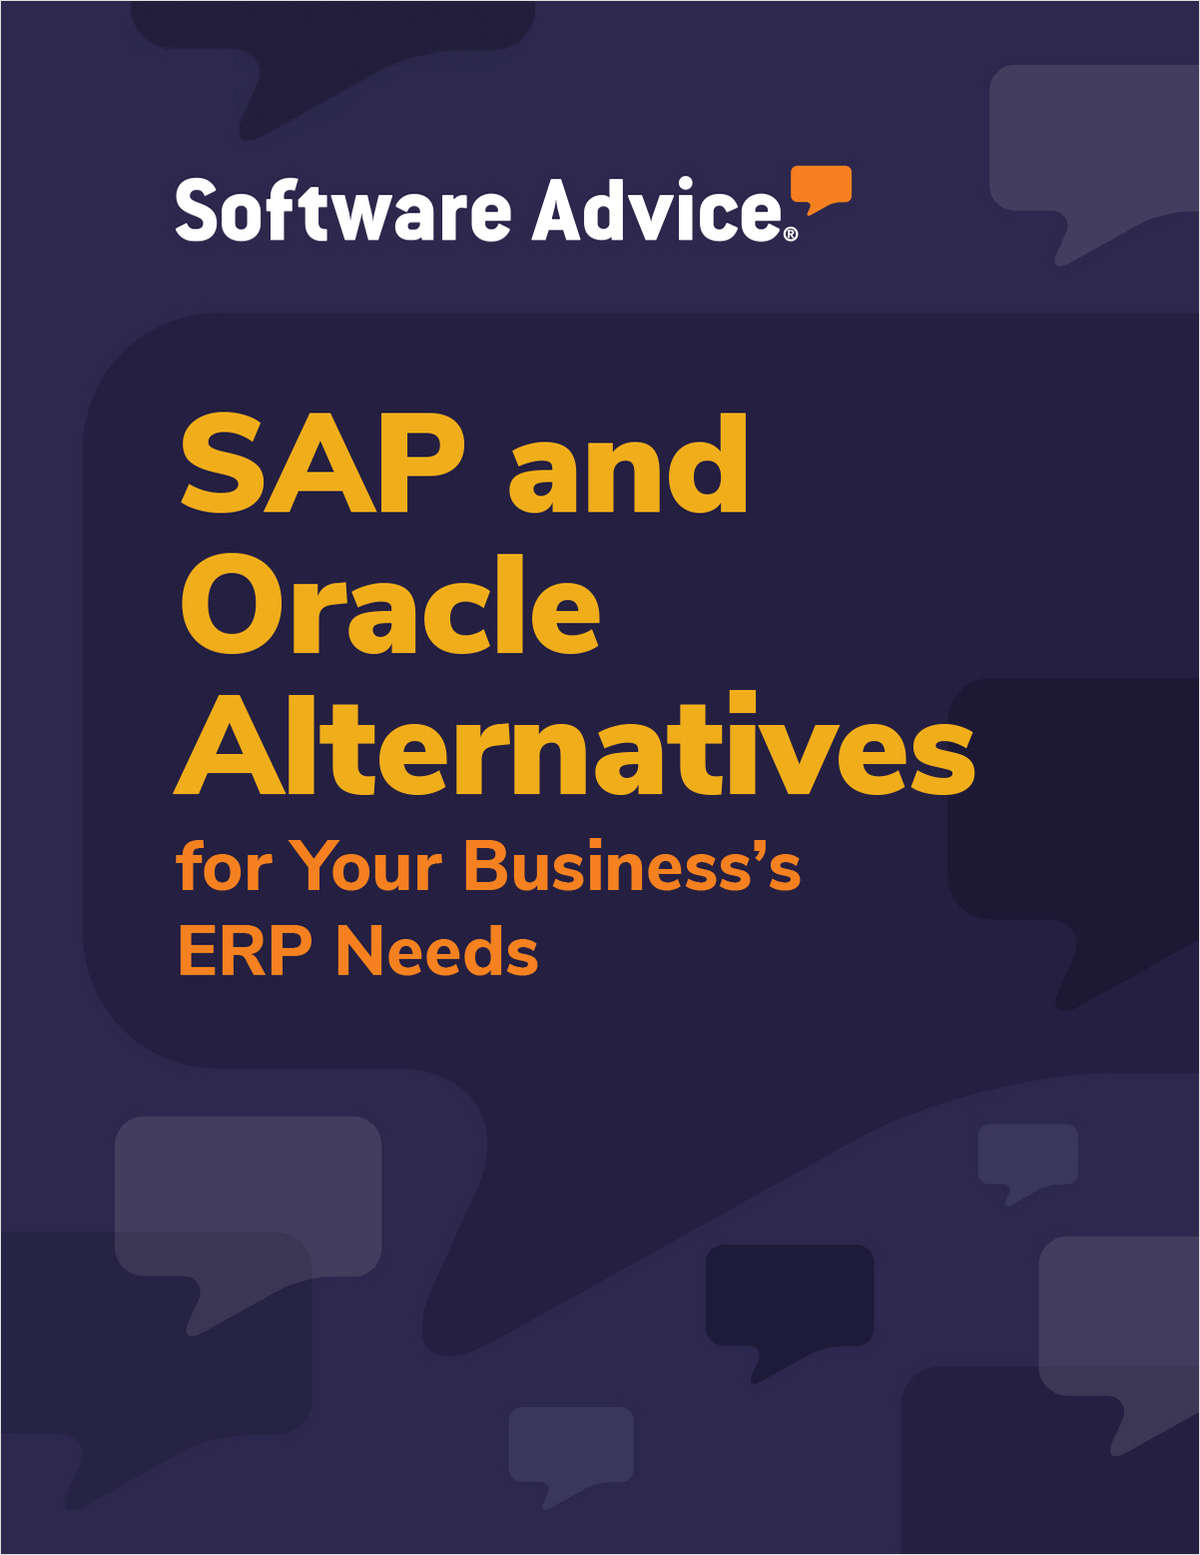 SAP and Oracle Alternatives for Your Business's ERP Needs